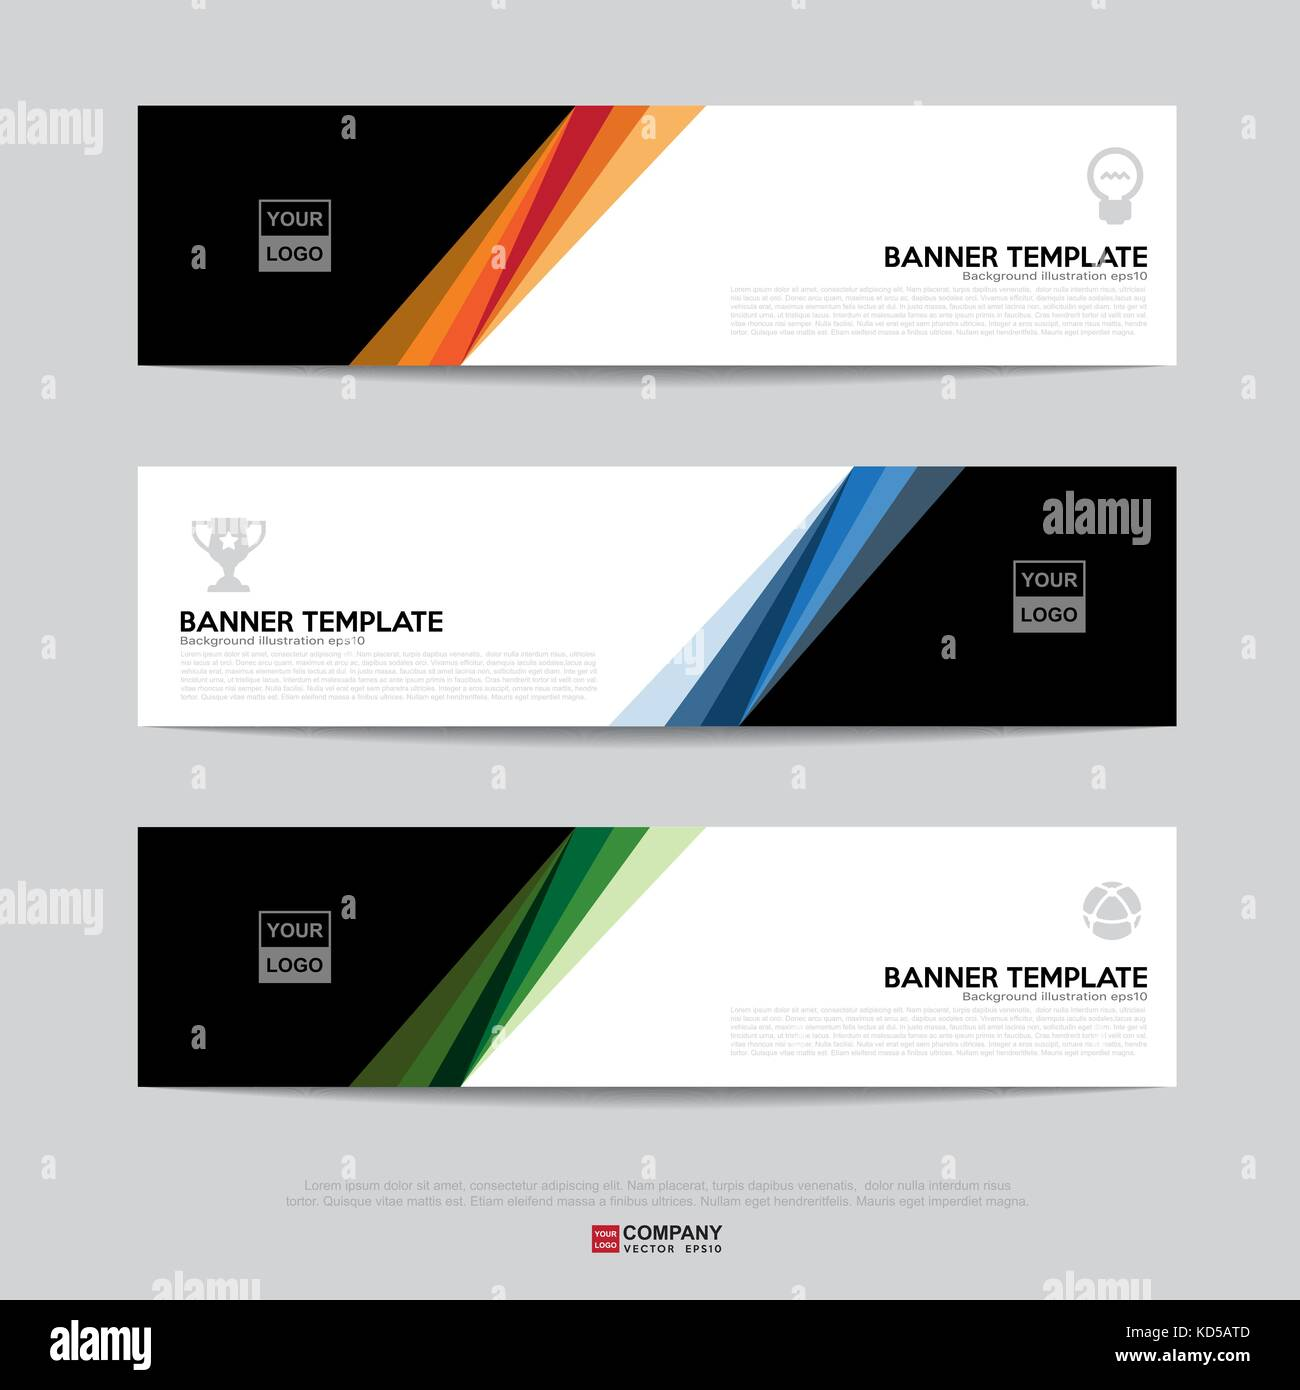 Design of flyers banners brochures and cards templatebanner design of flyers banners brochures and cards templatebanner design for business presentationheader templatebanner for web template flashek Choice Image